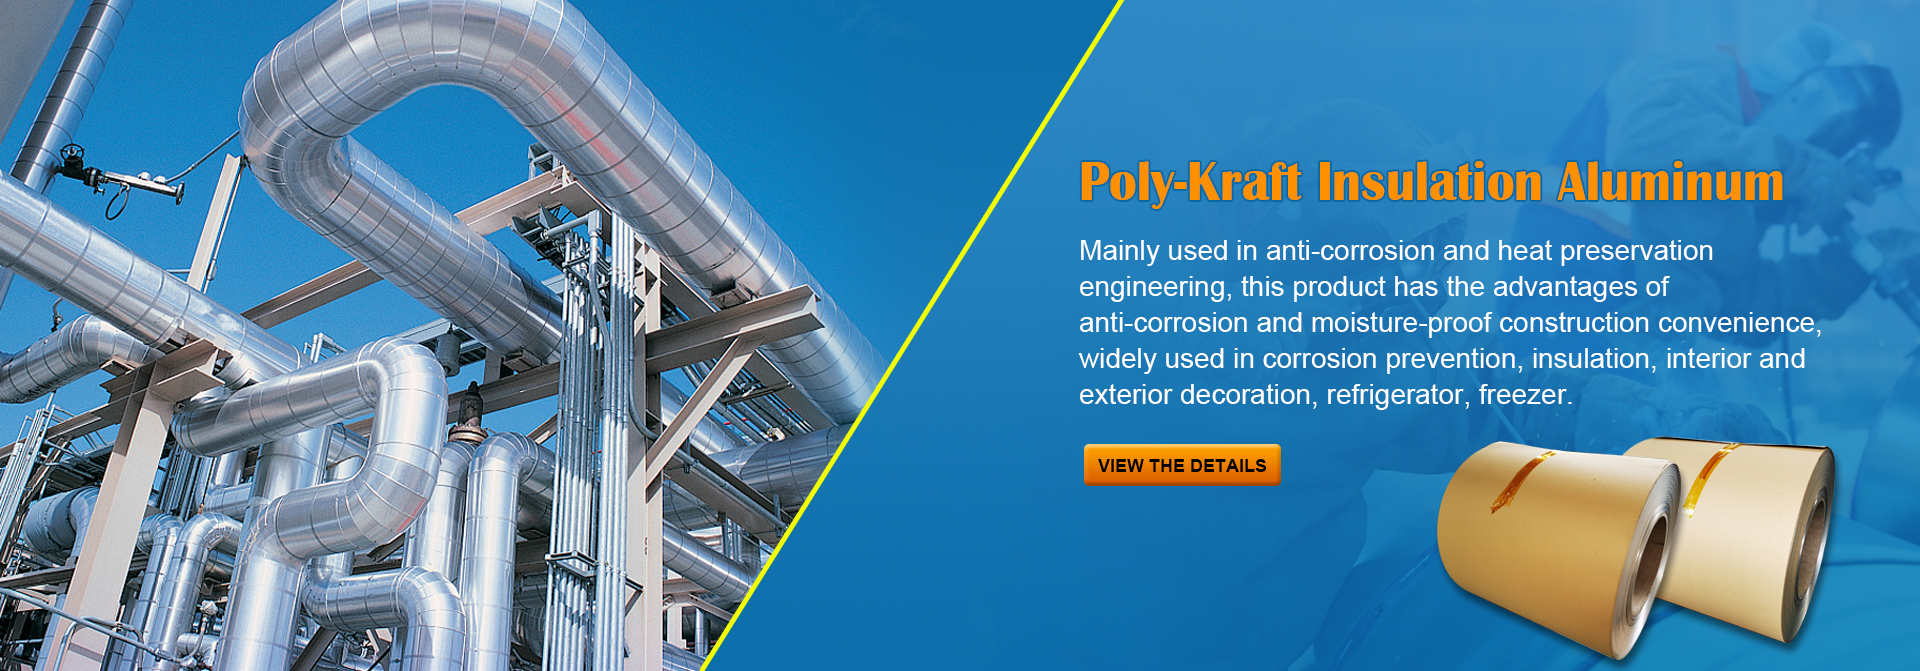 Poly-Kraft Insulation Aluminum